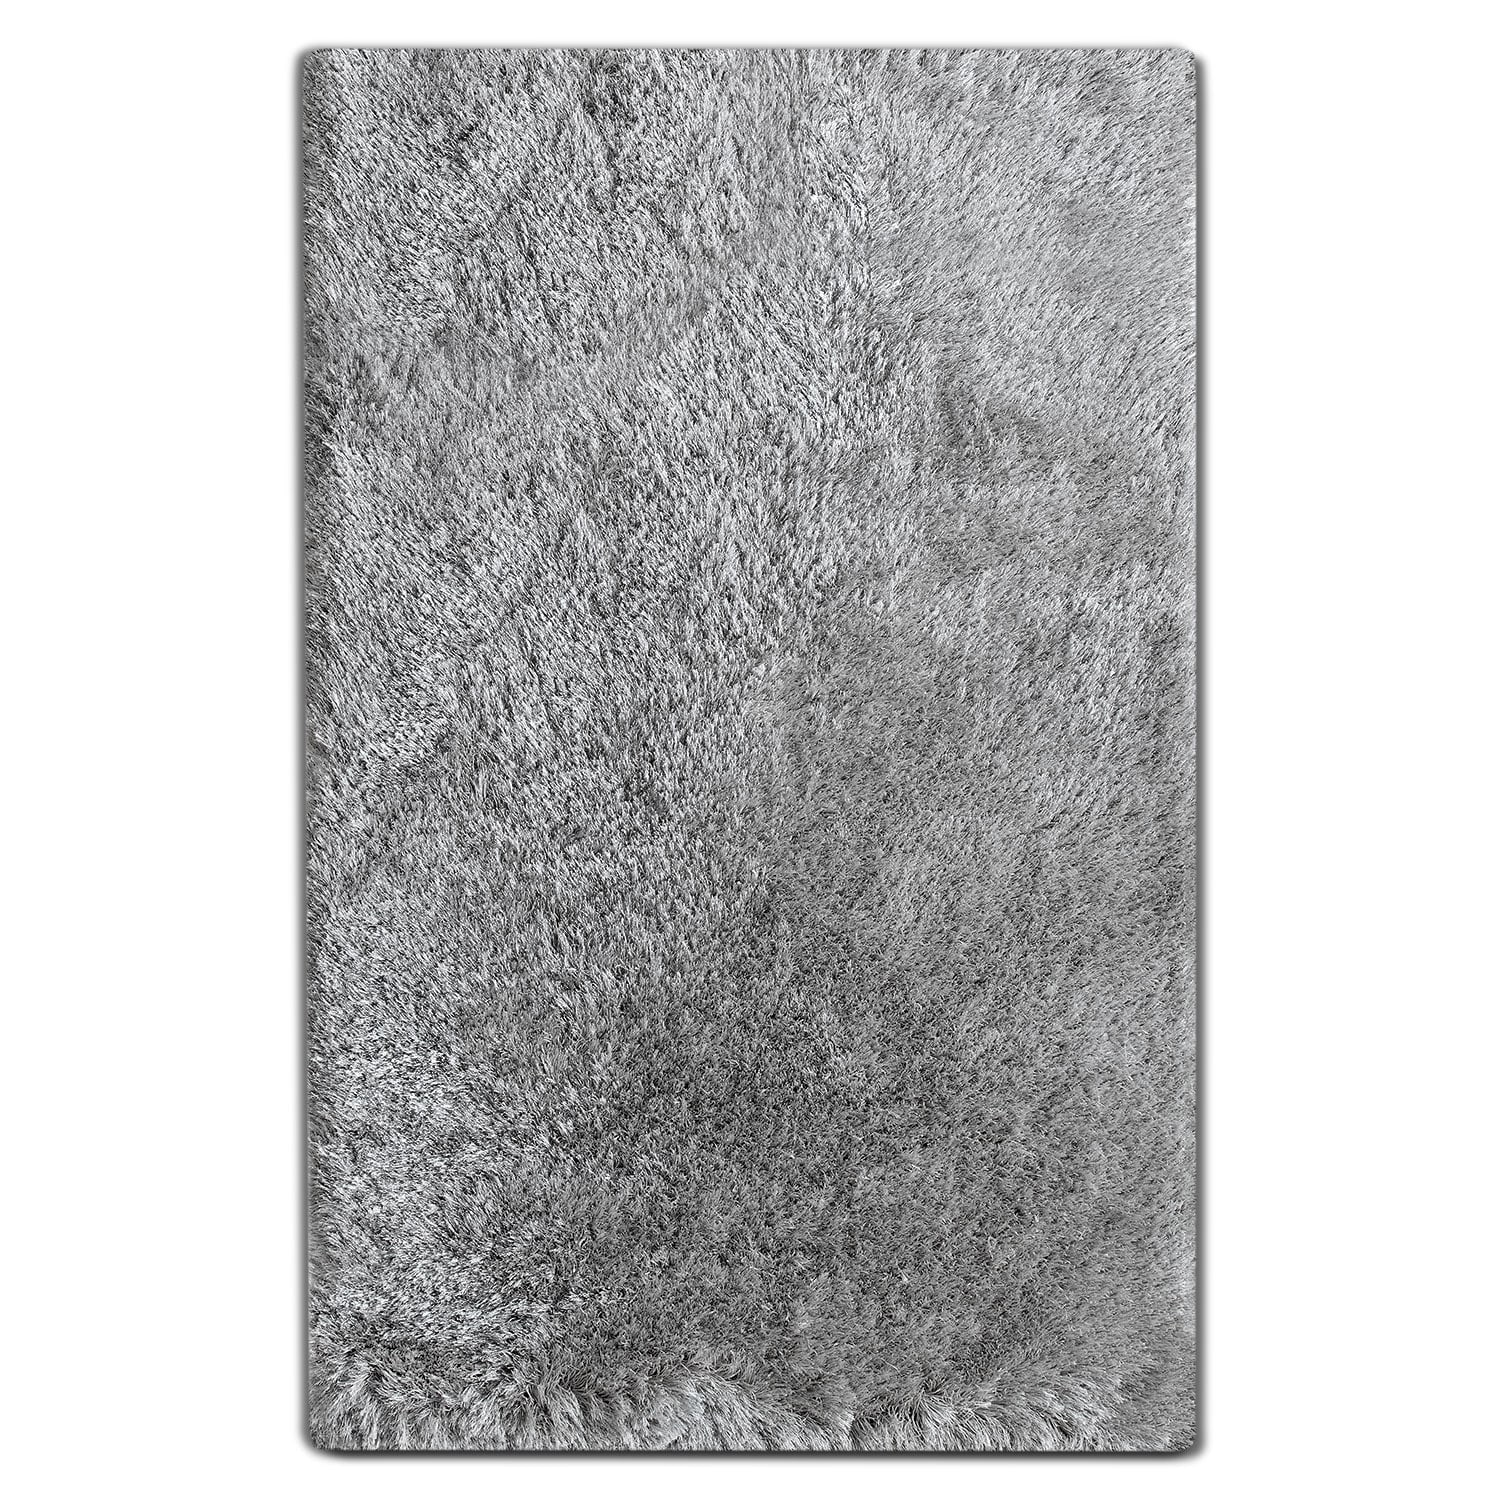 Rugs - Luxe 5' x 8' Area Rug - Silver